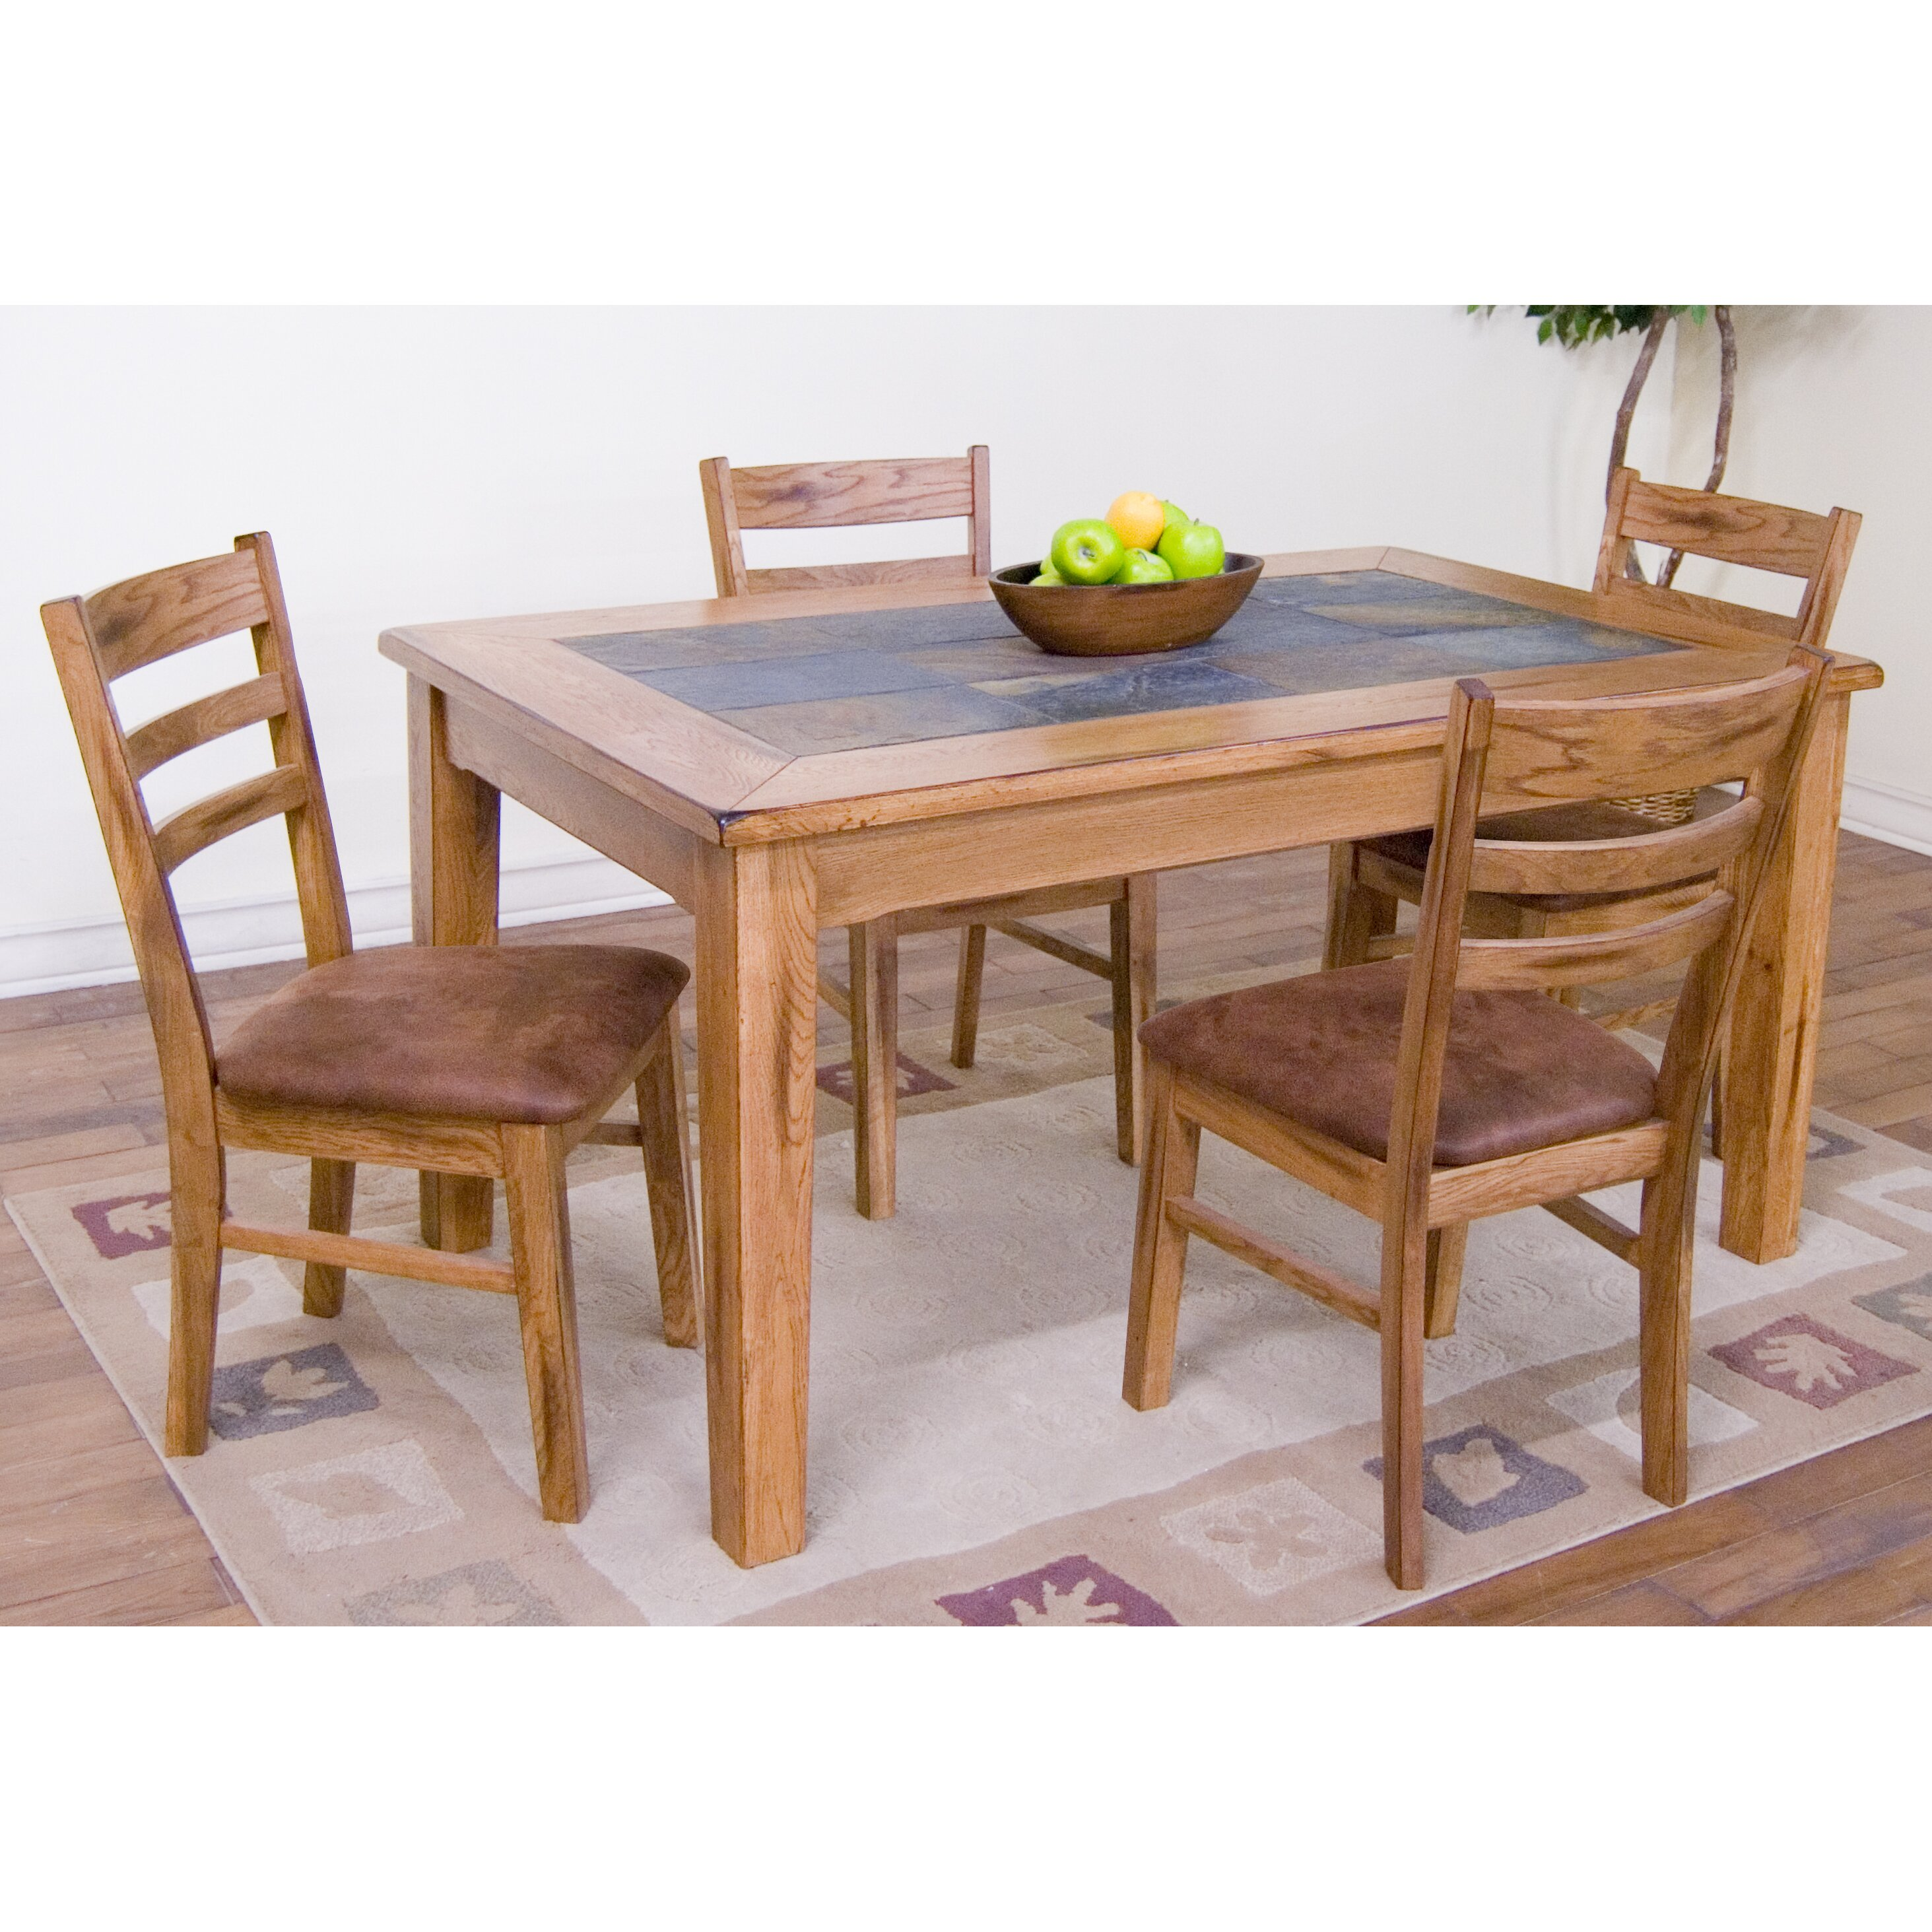 Sunny designs sedona 5 piece dining set reviews wayfair Dining set design ideas